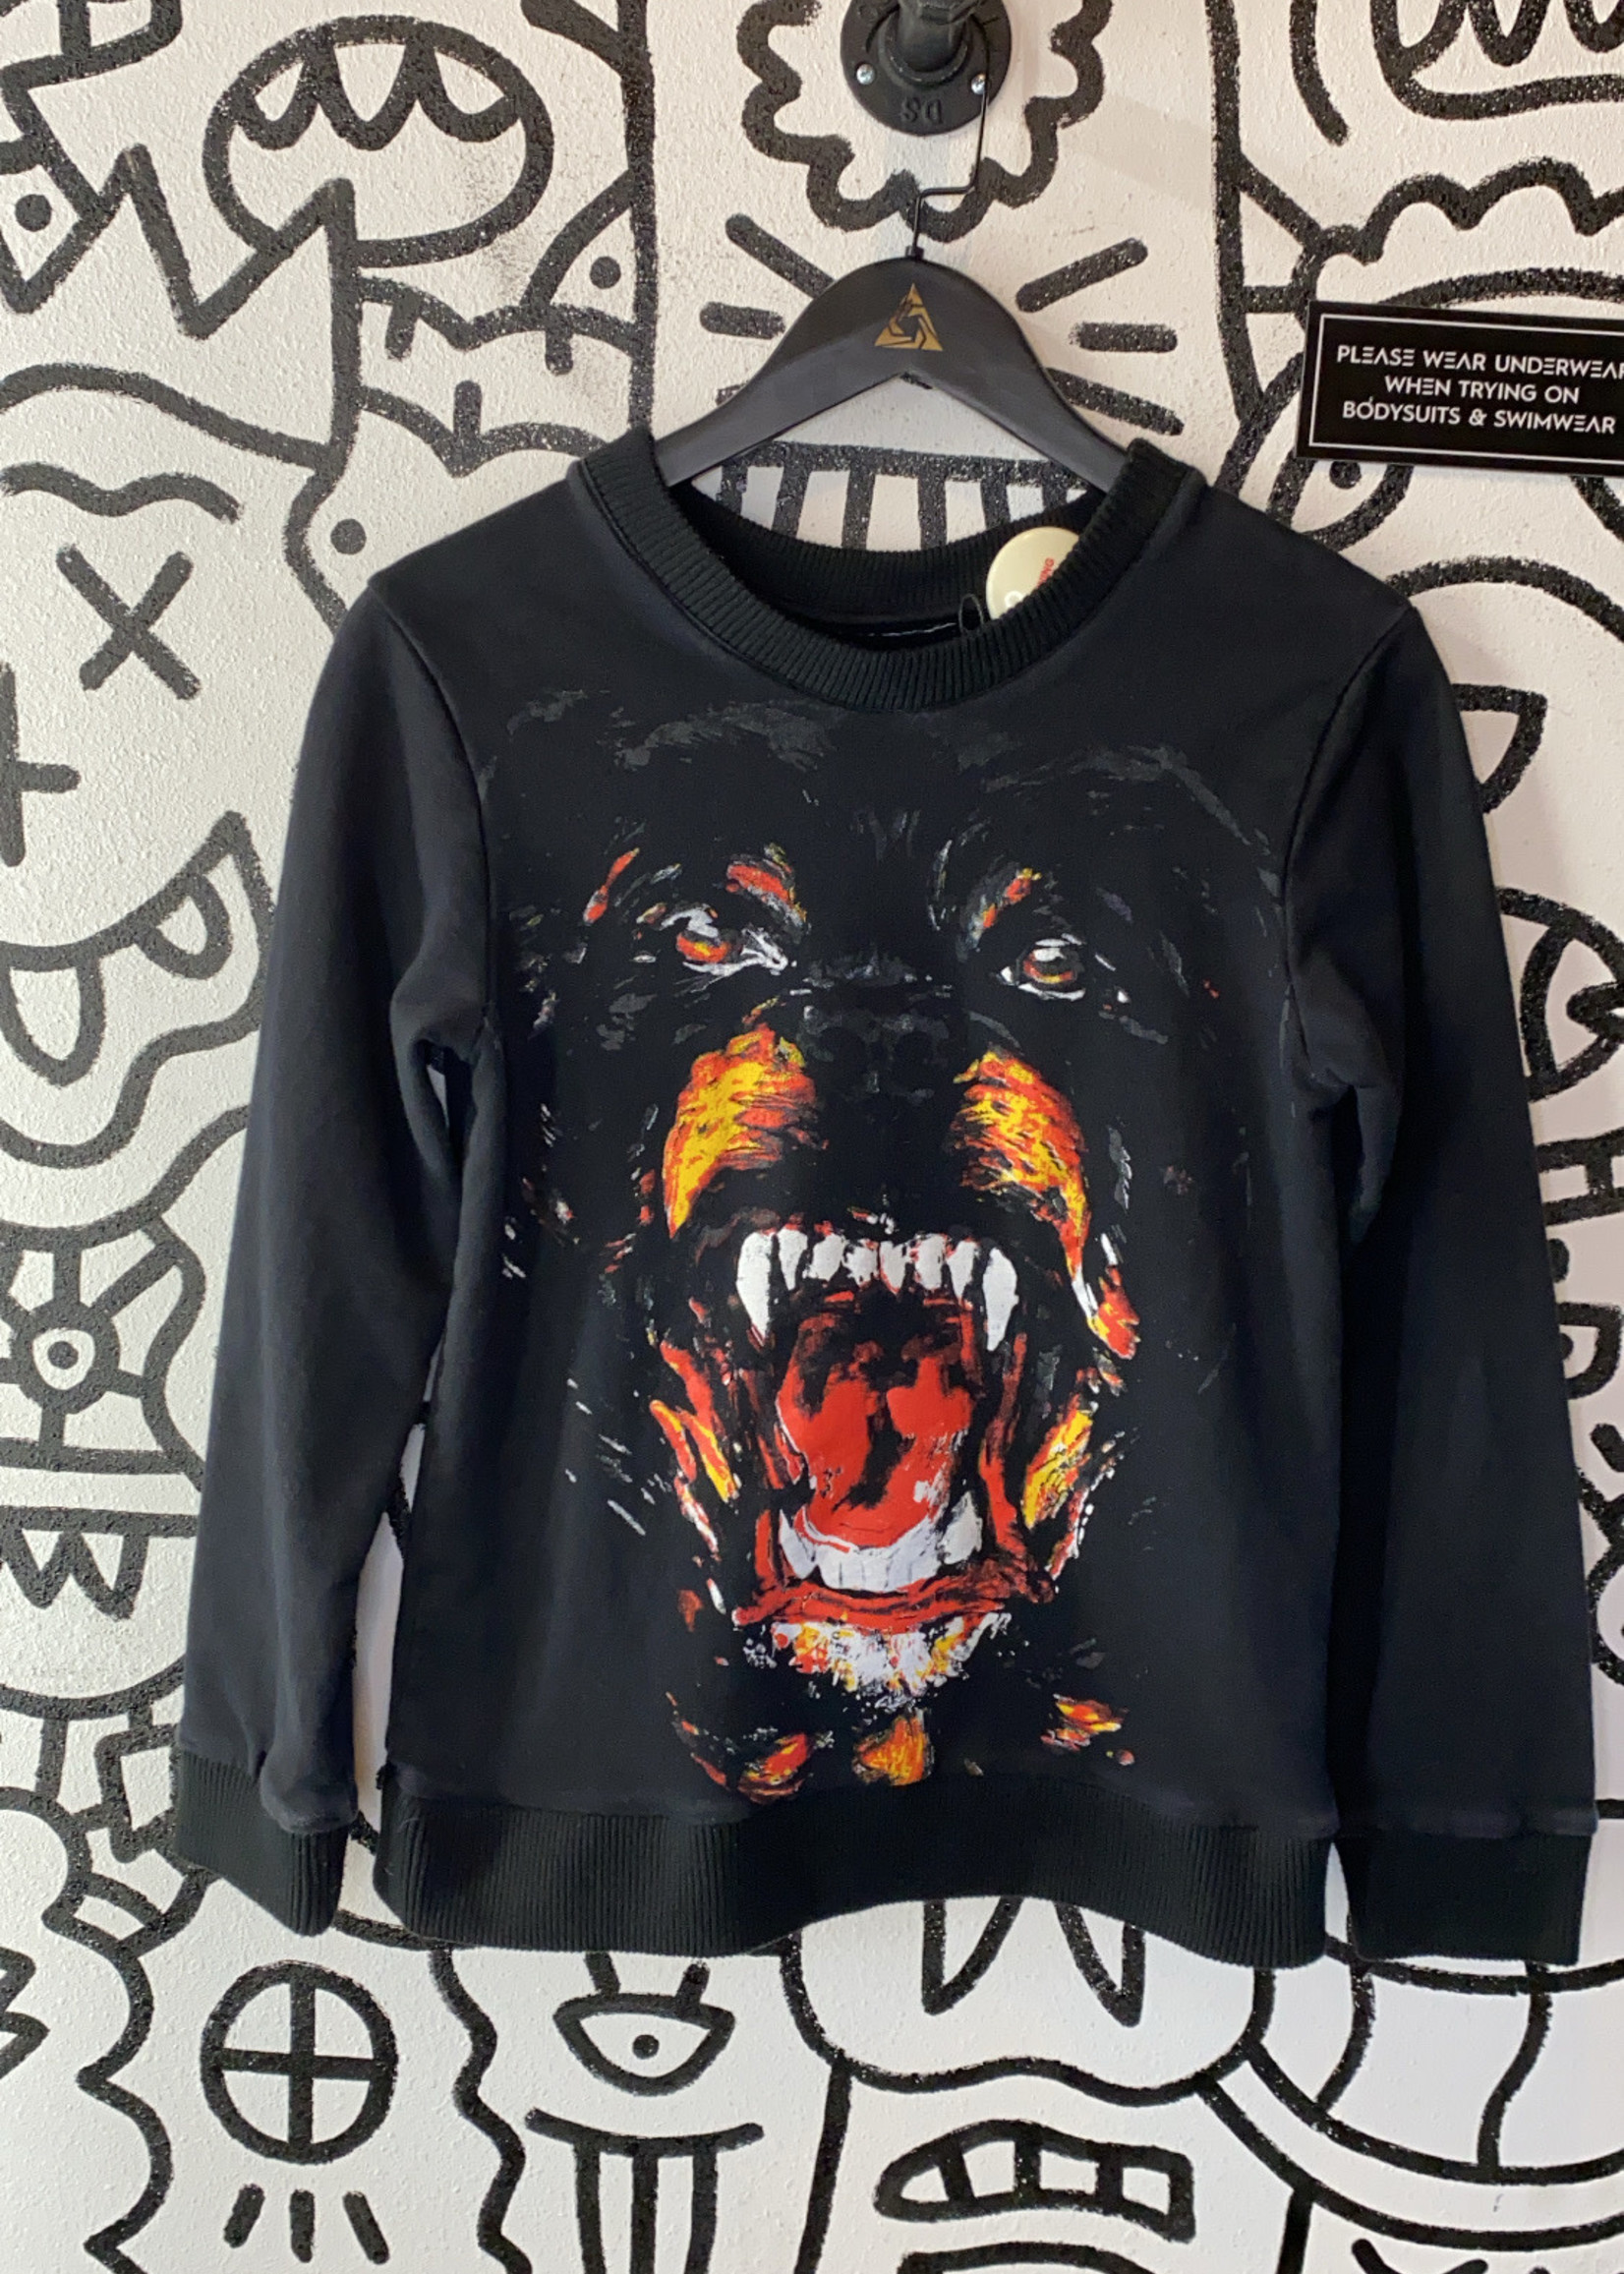 Givenchy Knockoff Black Rottweiler Sweater S